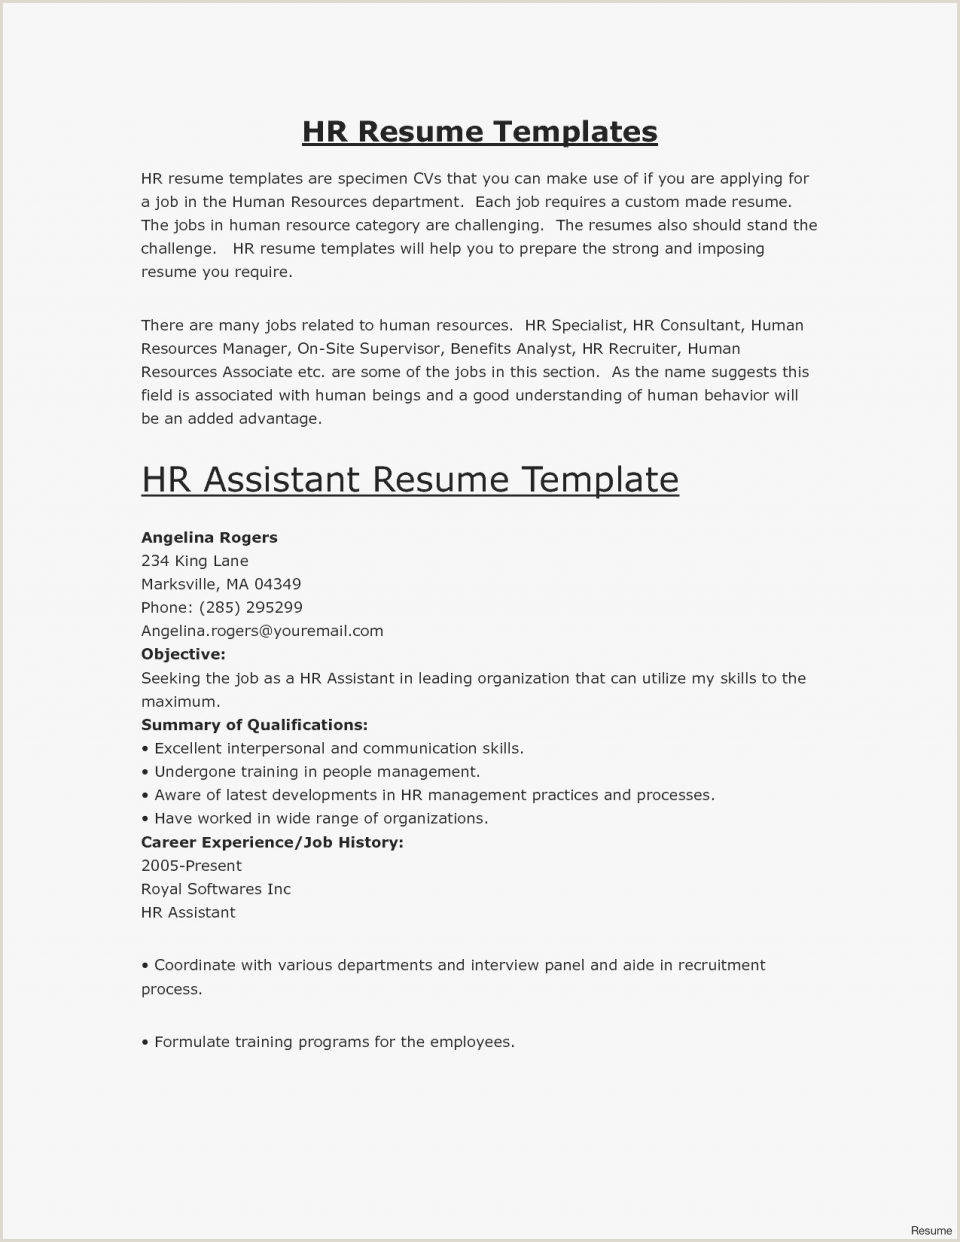 Job Search Networking Cover Letter How To Make Your Resume